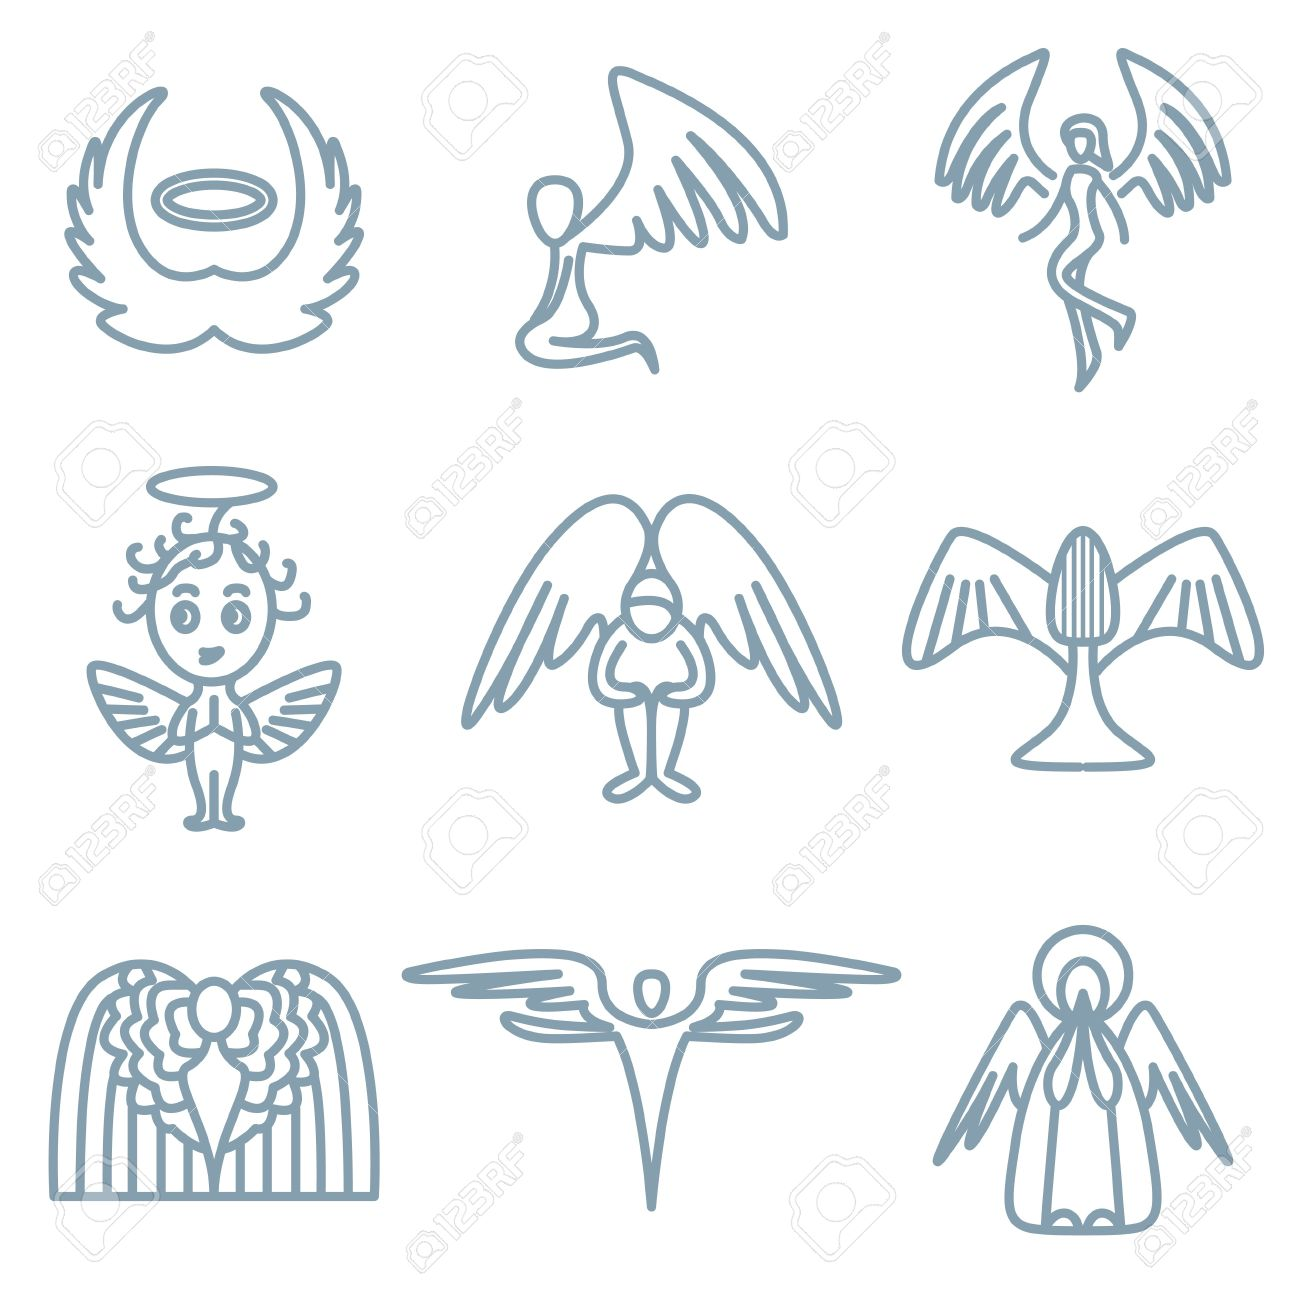 angel and charity icons vector set Stock Vector - 13406480